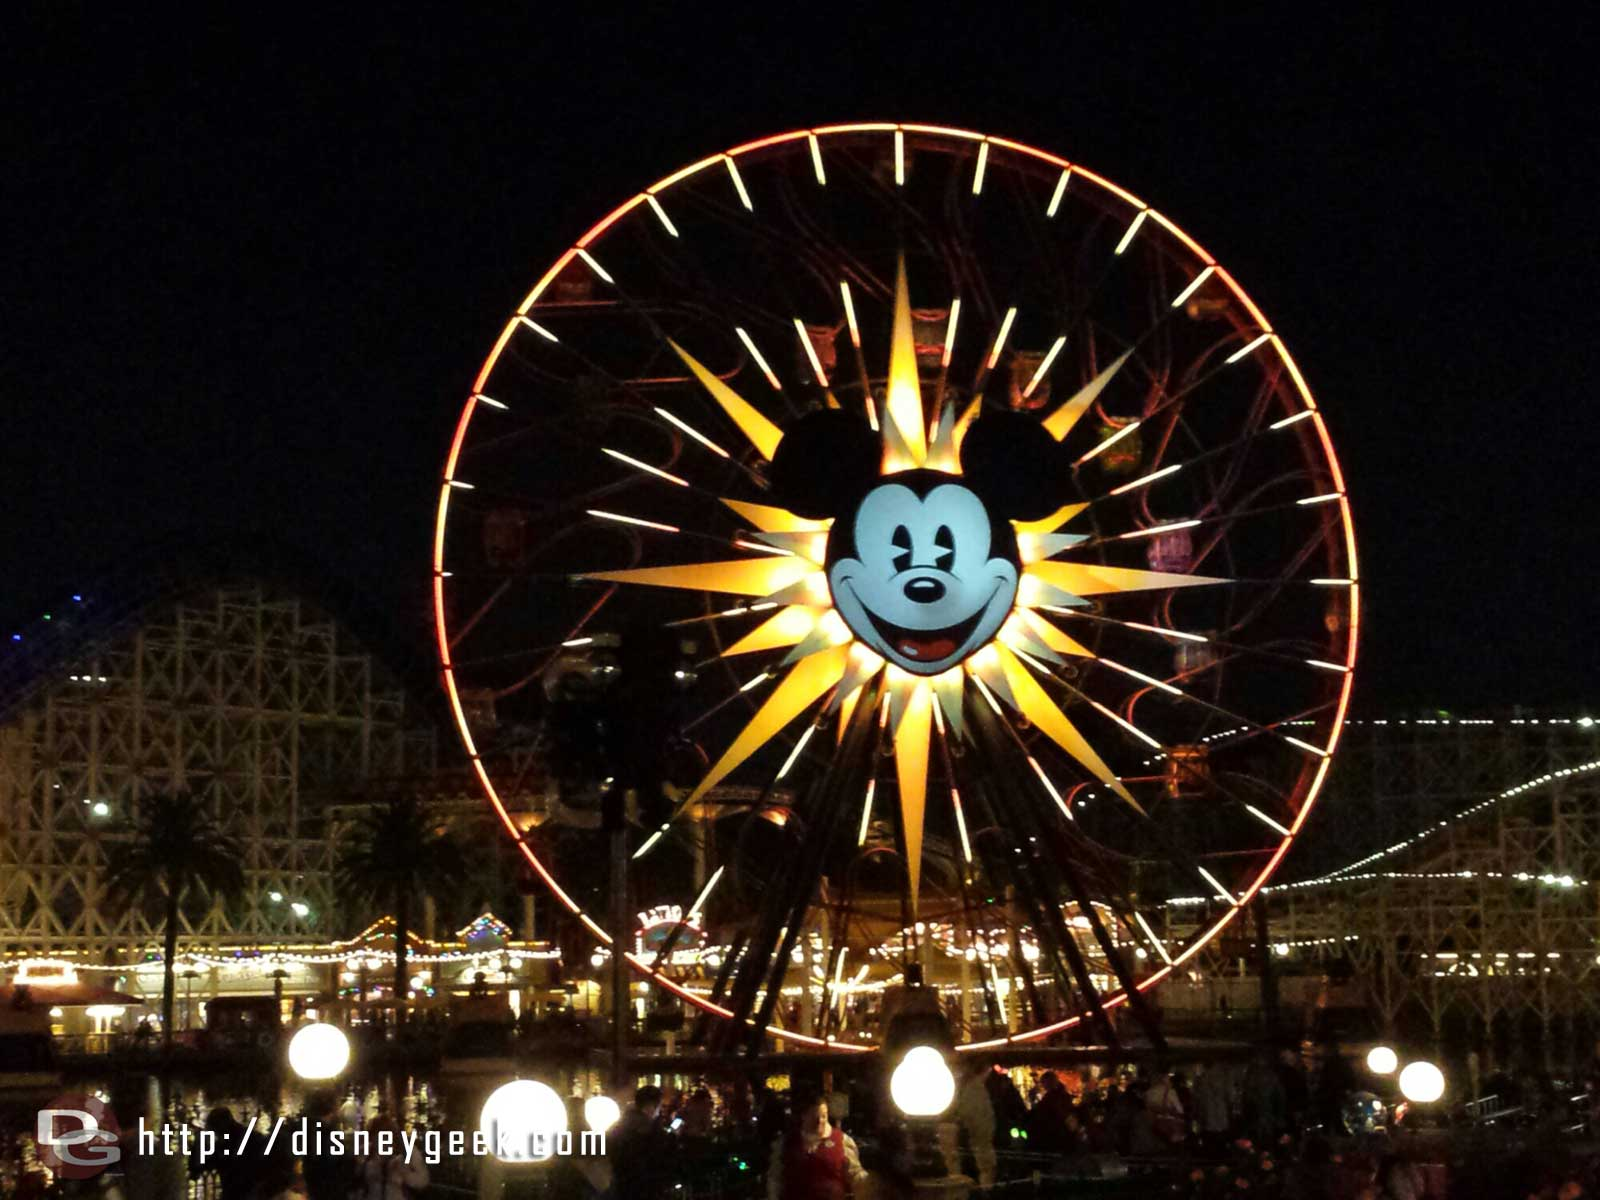 Waiting for World of Color Winter Dreams, used the FP I picked up 12hr ago